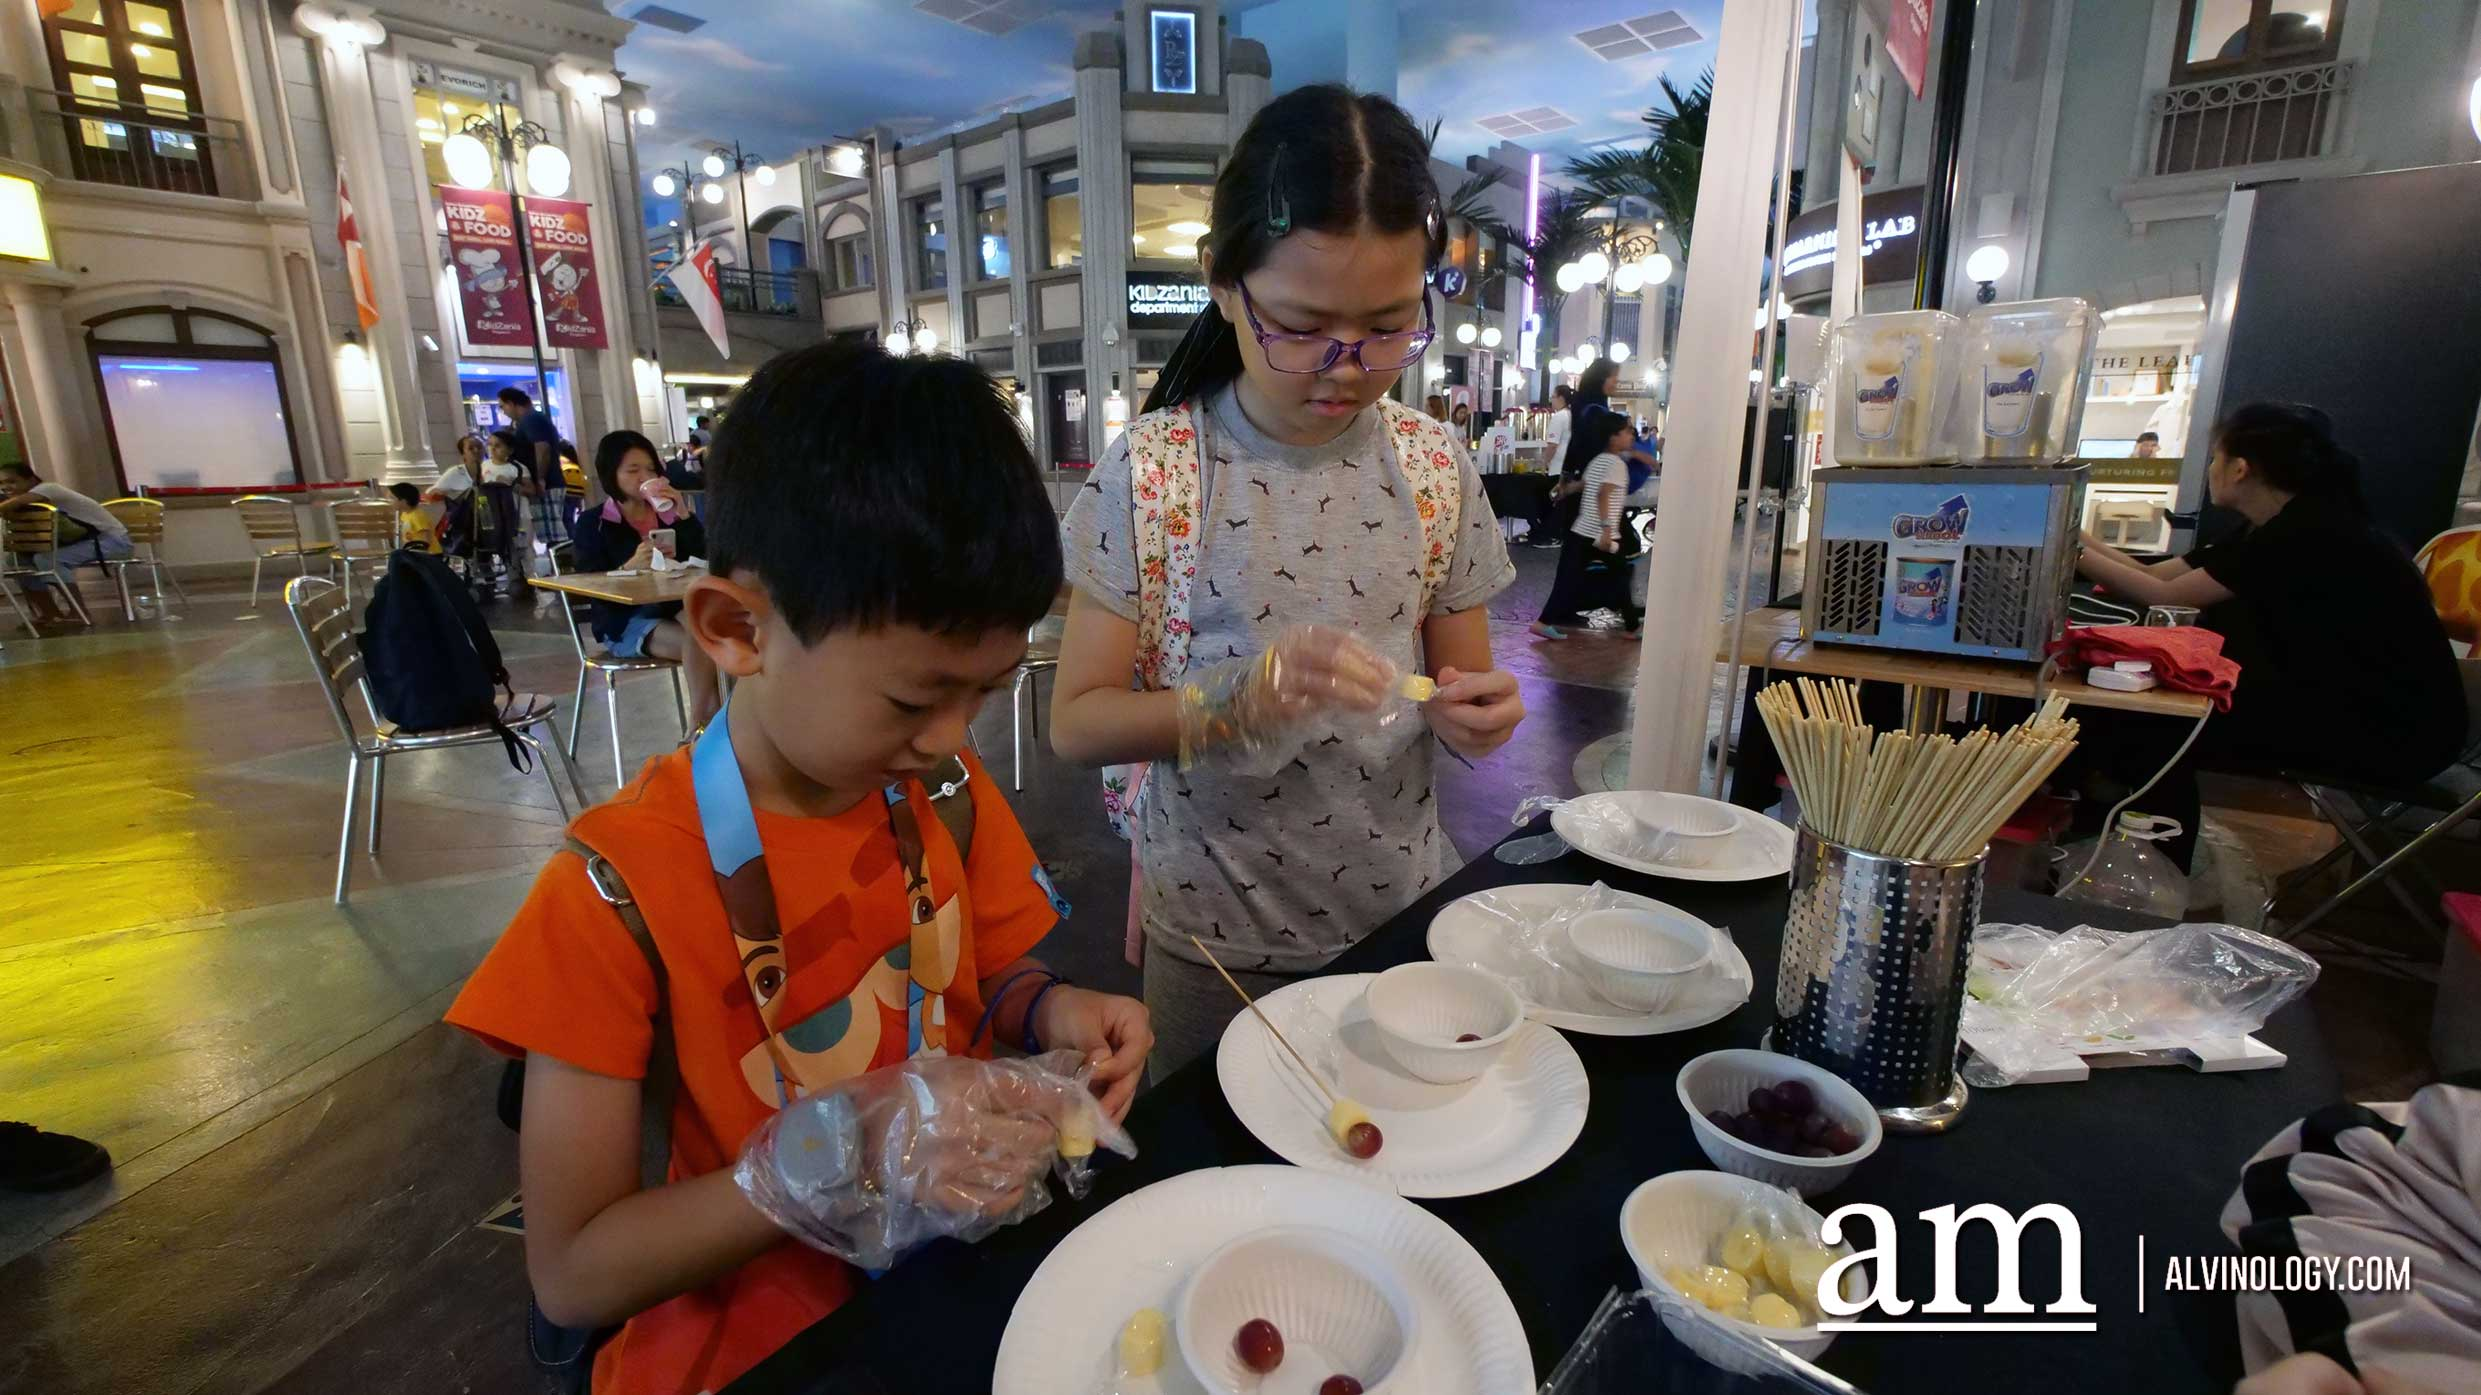 KidZania Singapore now has Annual Passes for kids and here's why you should get it - Alvinology